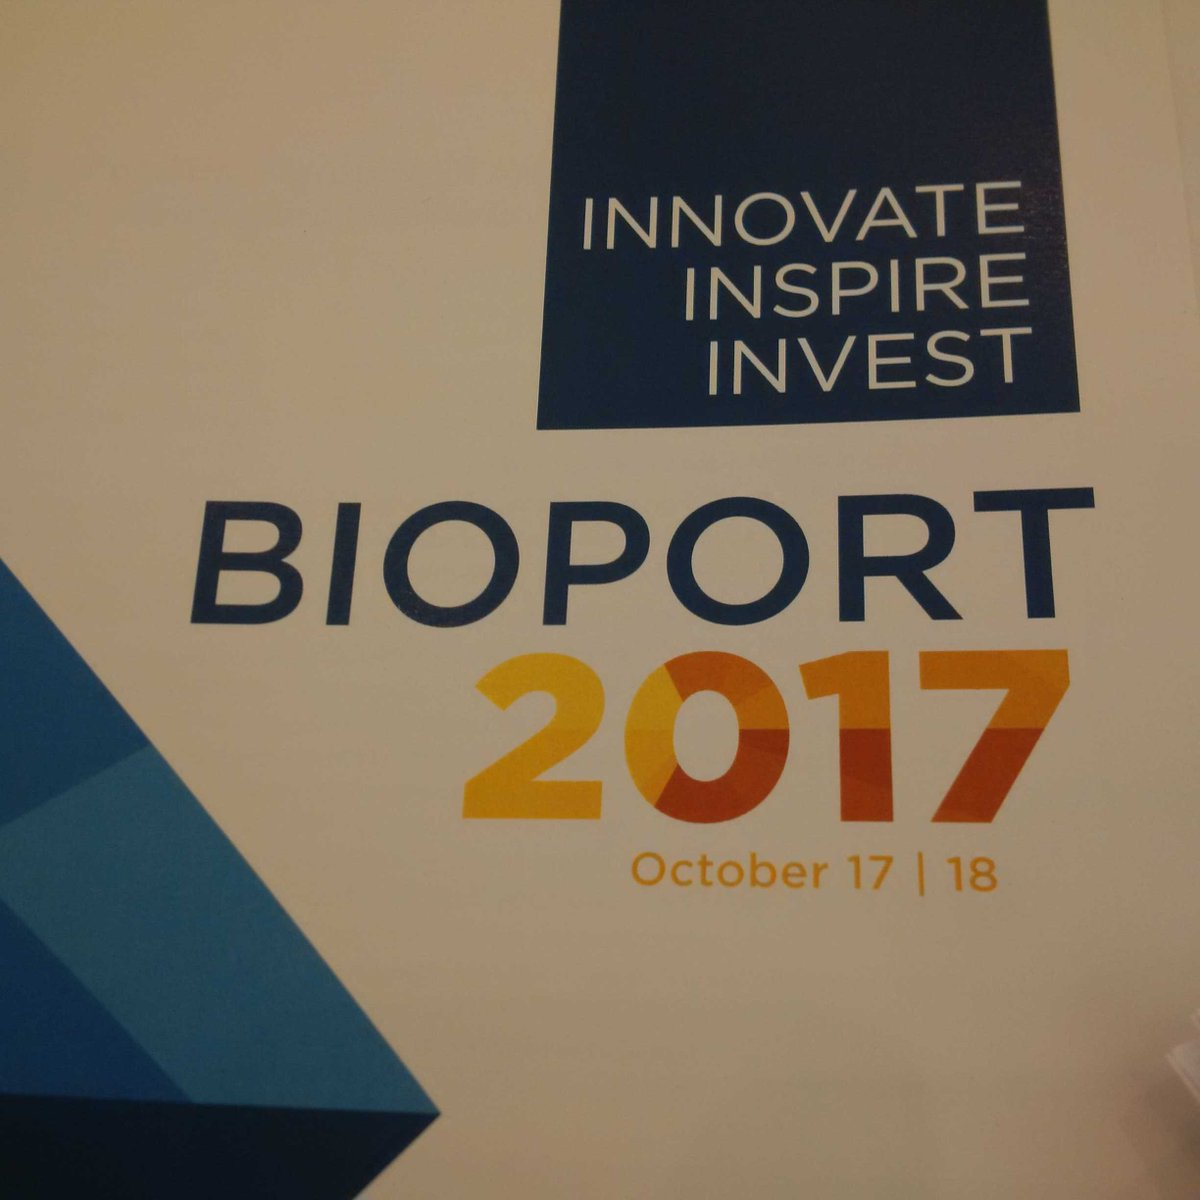 Atantic Canada&#39;s #Lifescience industry has gathered in Halifax for #BIOPORT17! @CanCGBoston  is here @BioNovaNS.<br>http://pic.twitter.com/GMF1XVQjEN